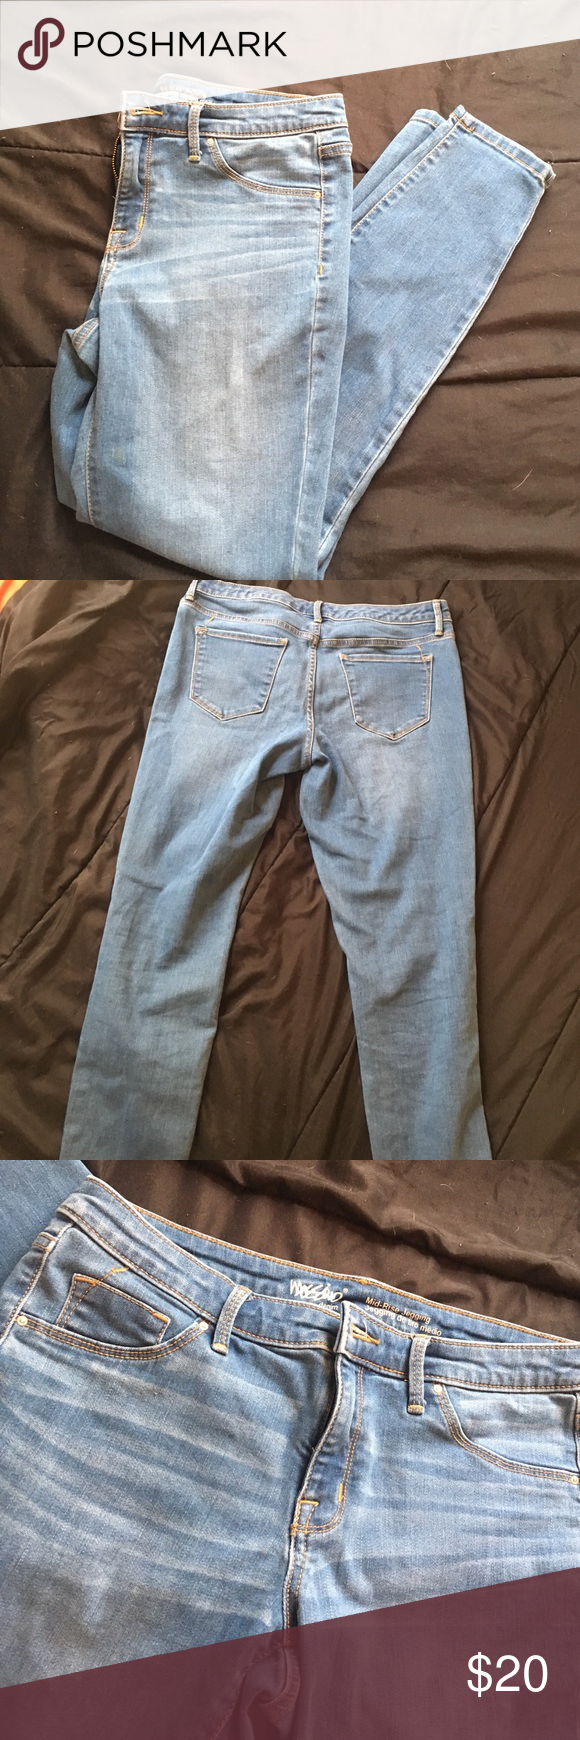 Mossimo mid-rise jegging/jeans A slight green stain on the left leg a little above the knee Mossimo Supply Co. Jeans Skinny